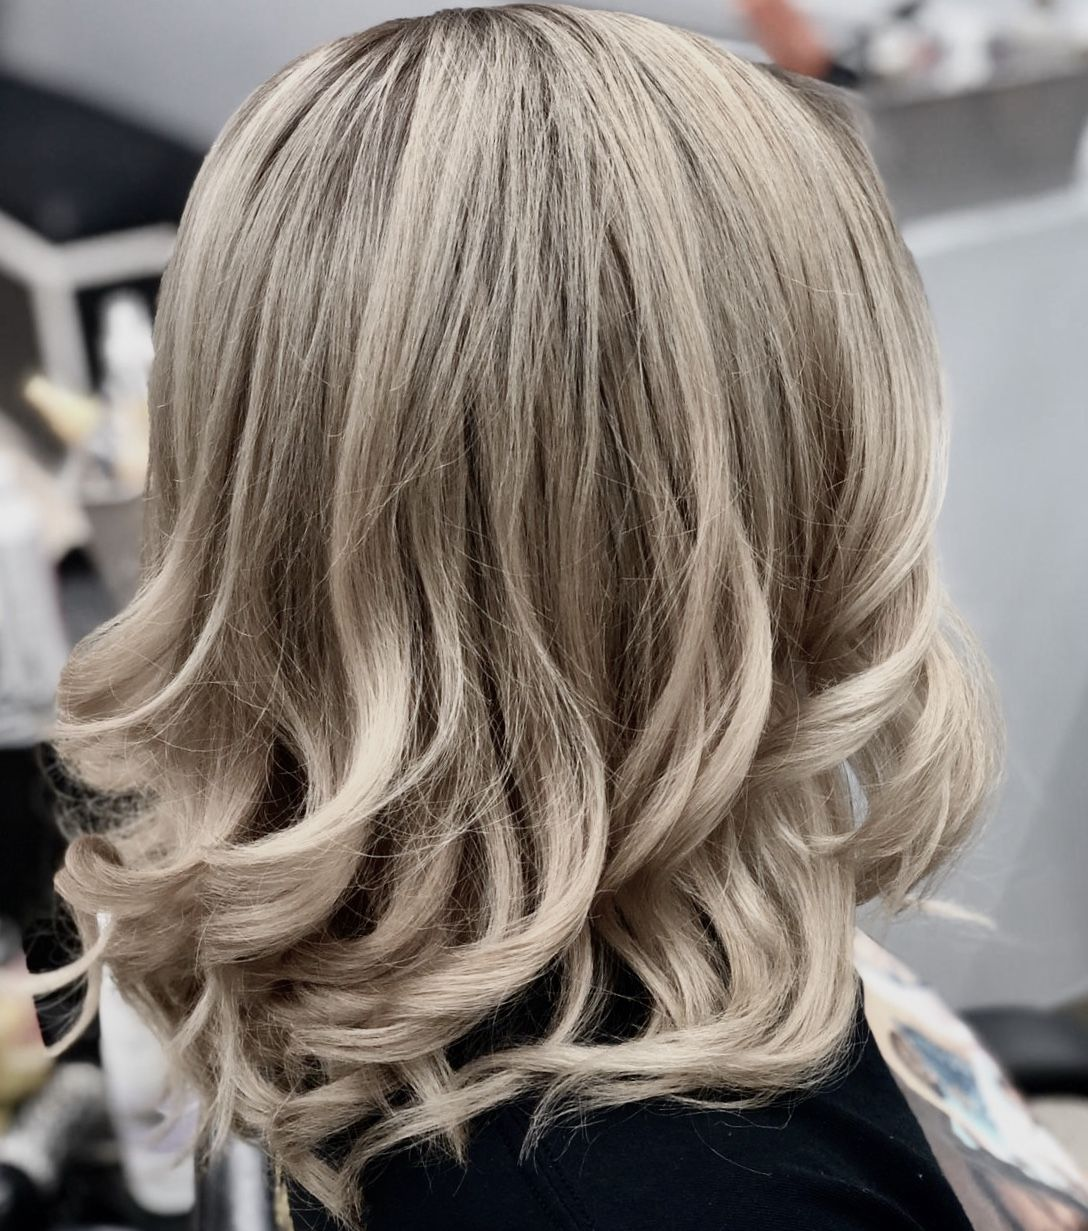 Colores Balayage In 2020 Dominican Hair Long Hair Styles Hair Salon